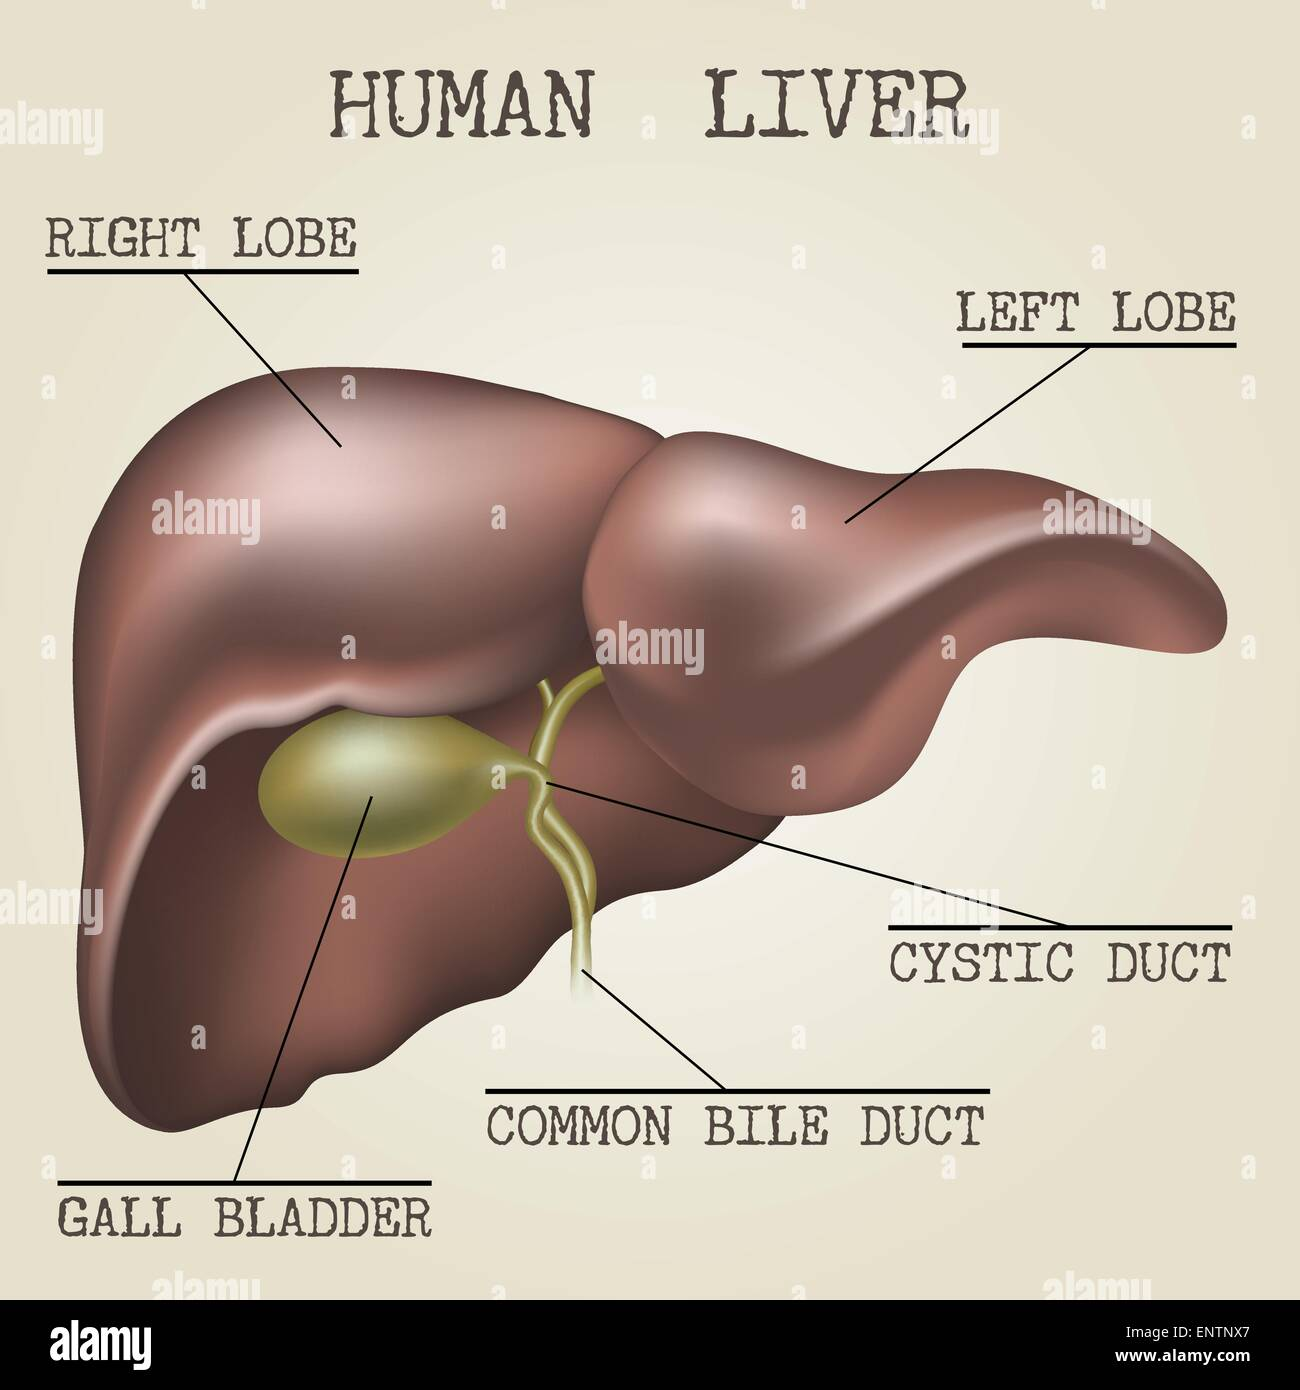 hight resolution of human liver anatomy illustration drawn in vintage encyclopedia style